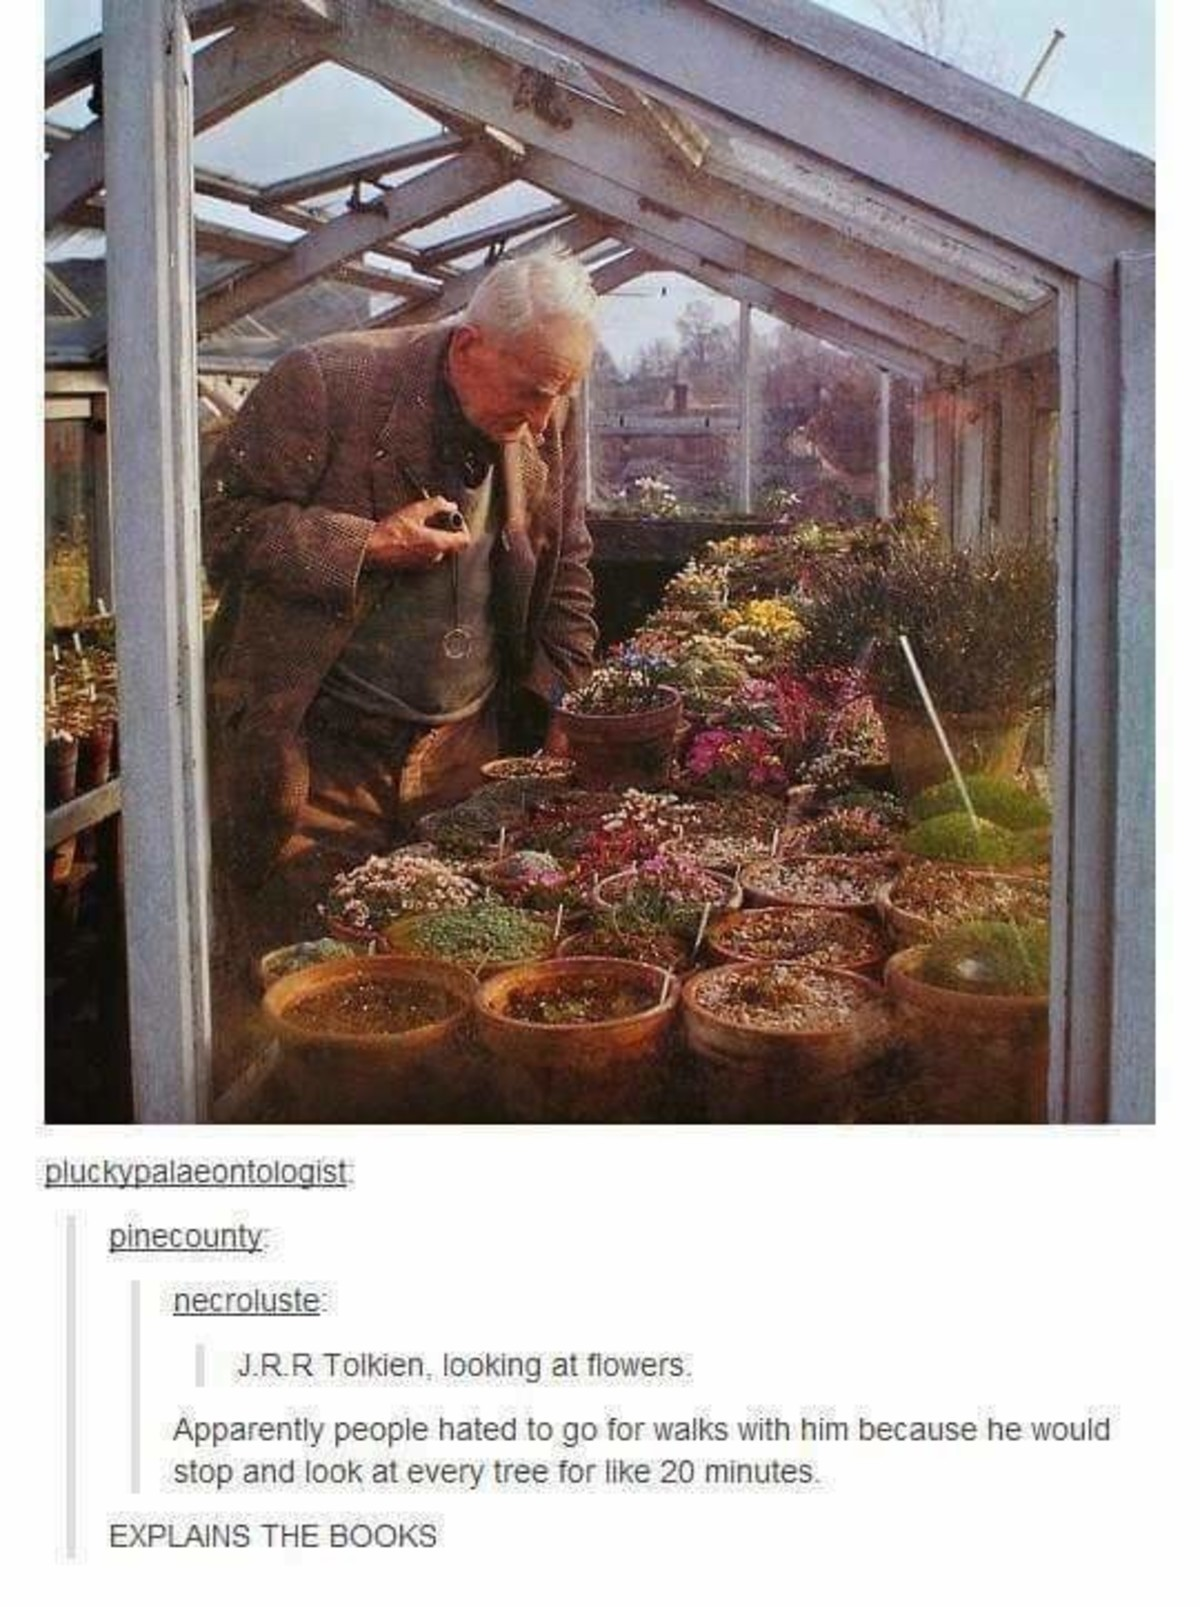 J.R.R Tolkien. .. Huh, finally something me and the man himself have in common. I just wish it was the talent, instead.